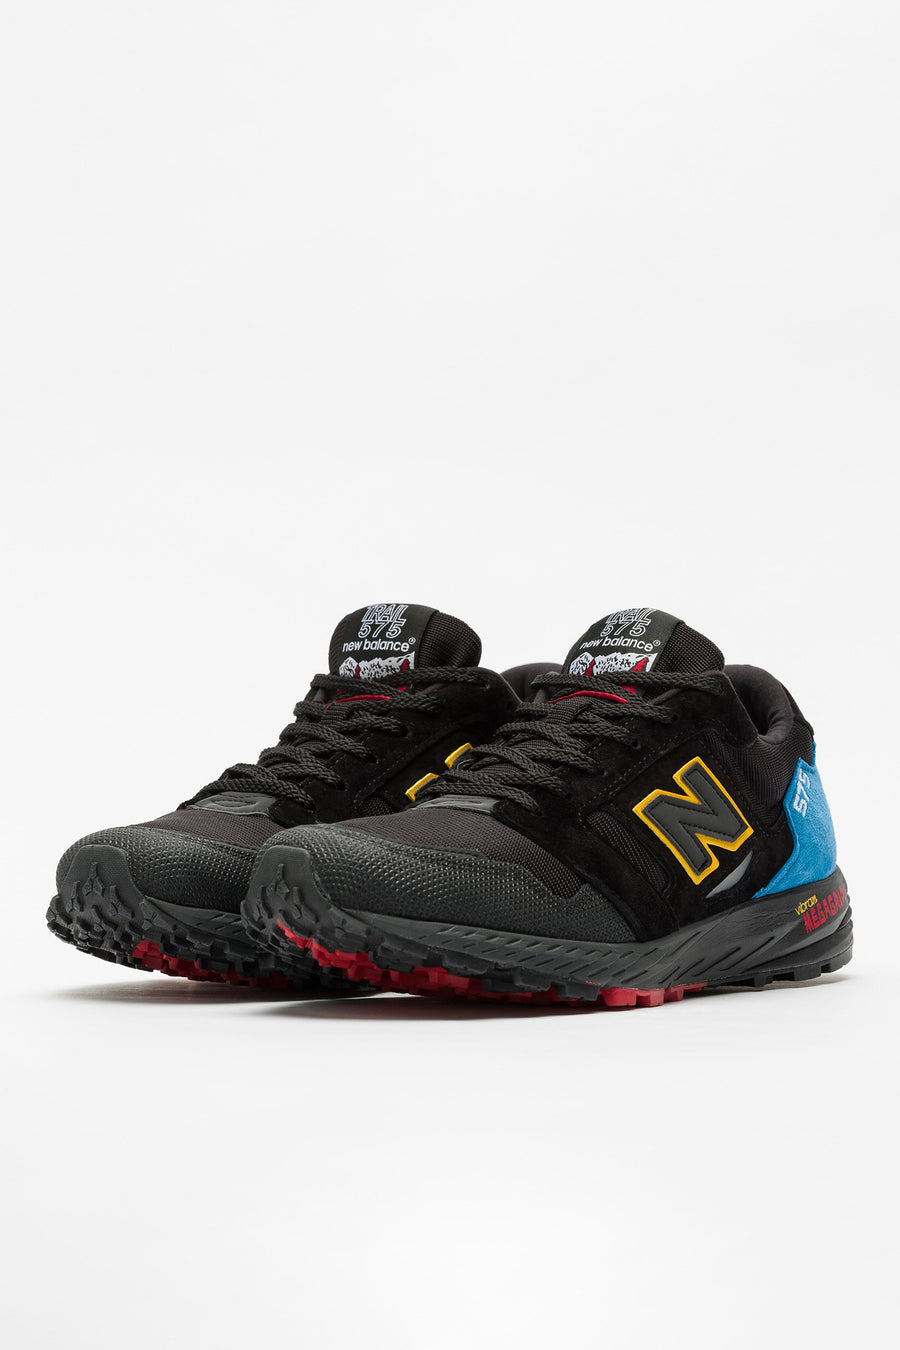 New Balance MTL575UT in Black/Turquoise - Notre